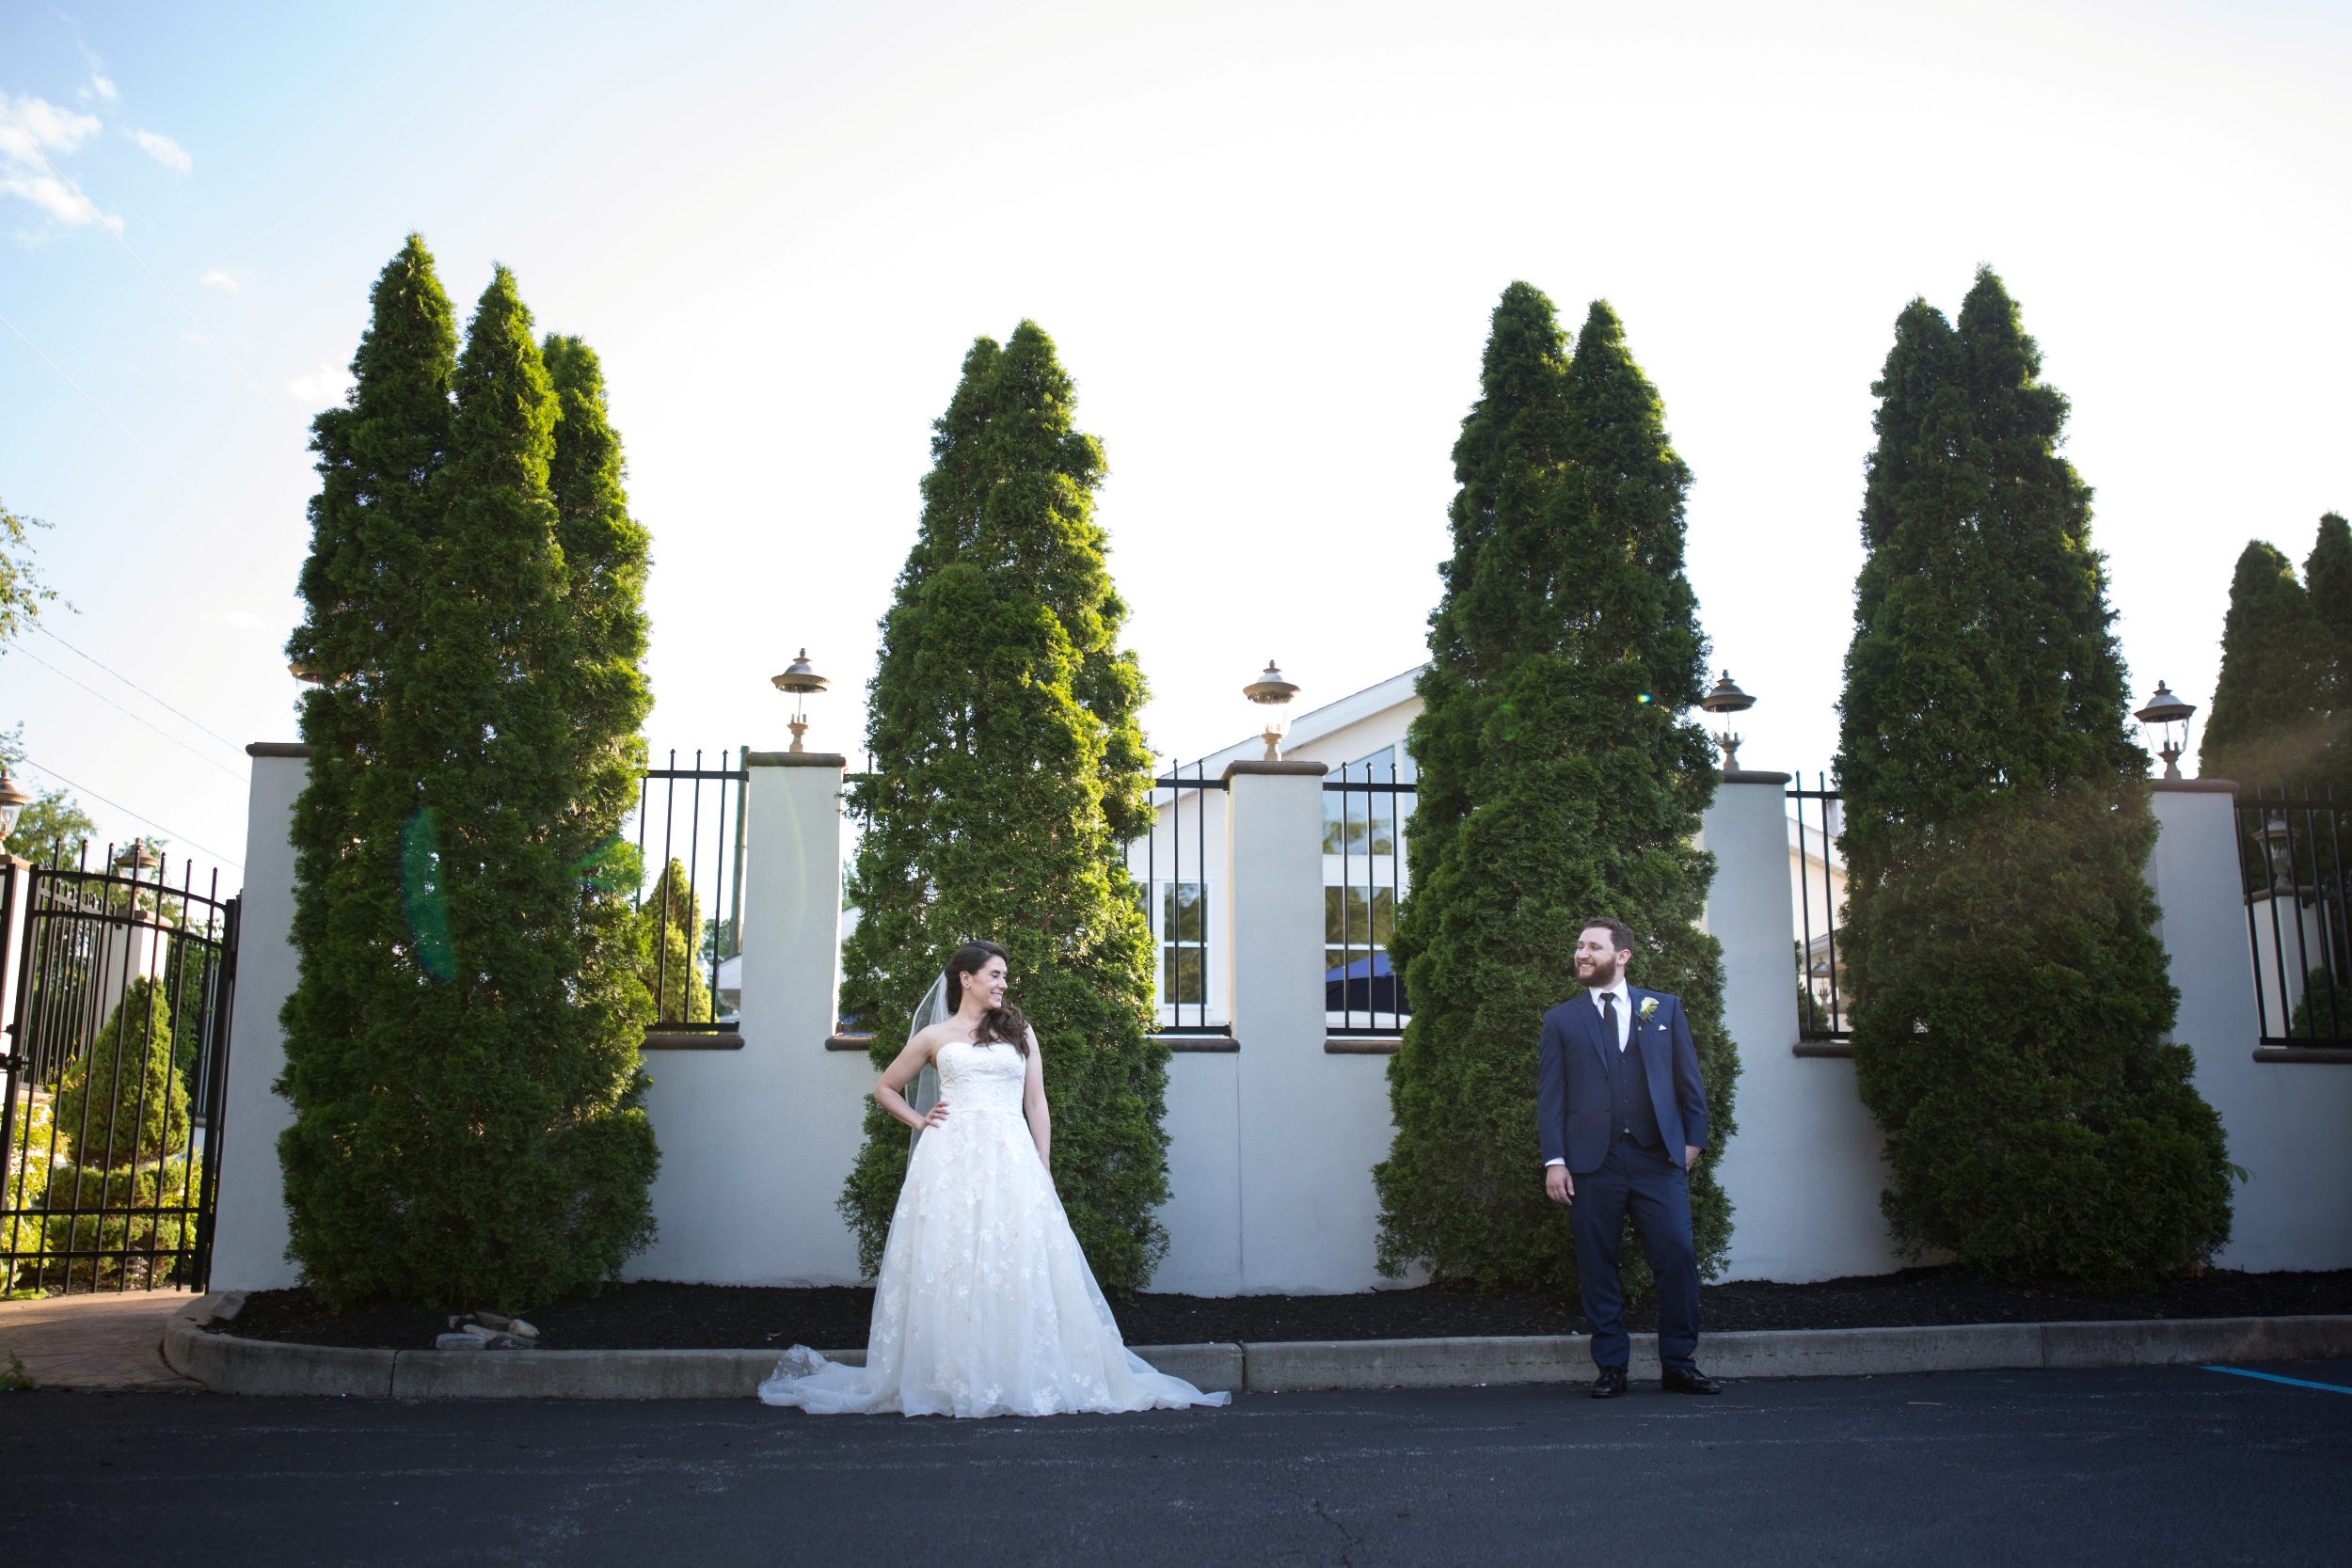 Bride and groom portraits at Mendenhall Inn in Media